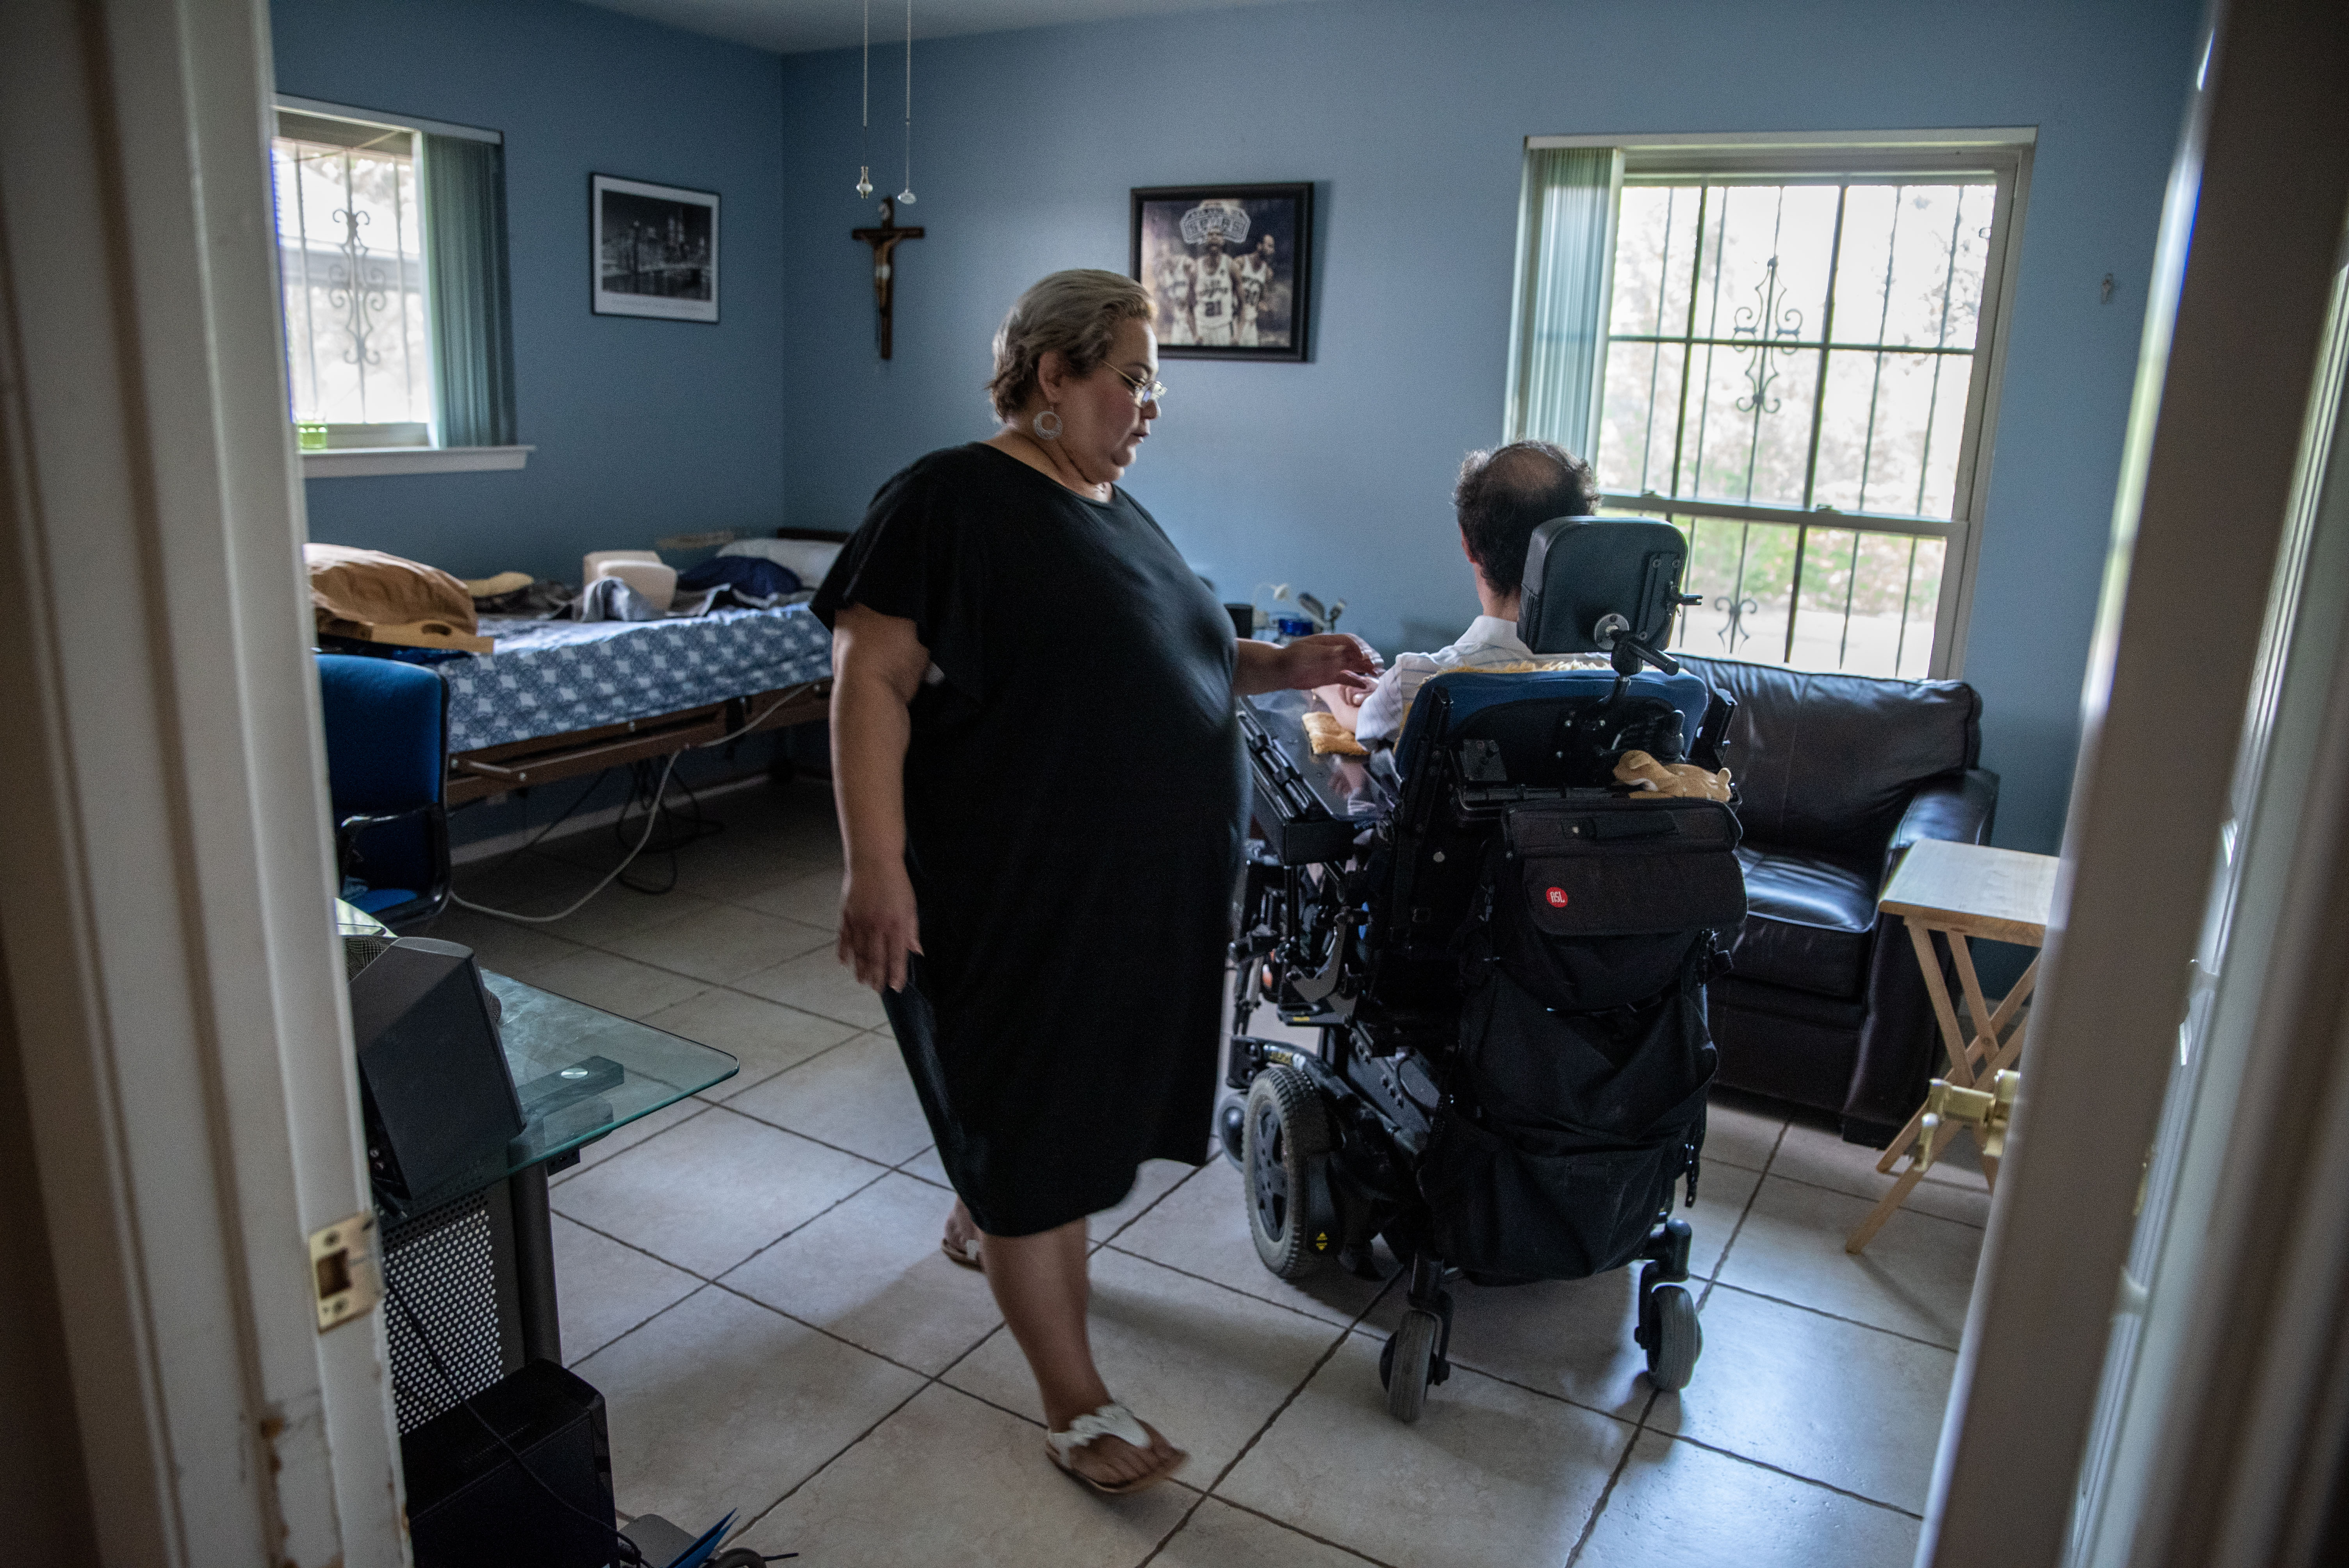 Ramona Cortes helps Gil Vasquez in his home in San Antonio on July 30. Vasquez has muscular dystrophy and receives a lot of care from his father, who was hospitalized after becoming sick with the coronavirus. MUST CREDIT: Photo by Sergio Flores for The Washington Post.